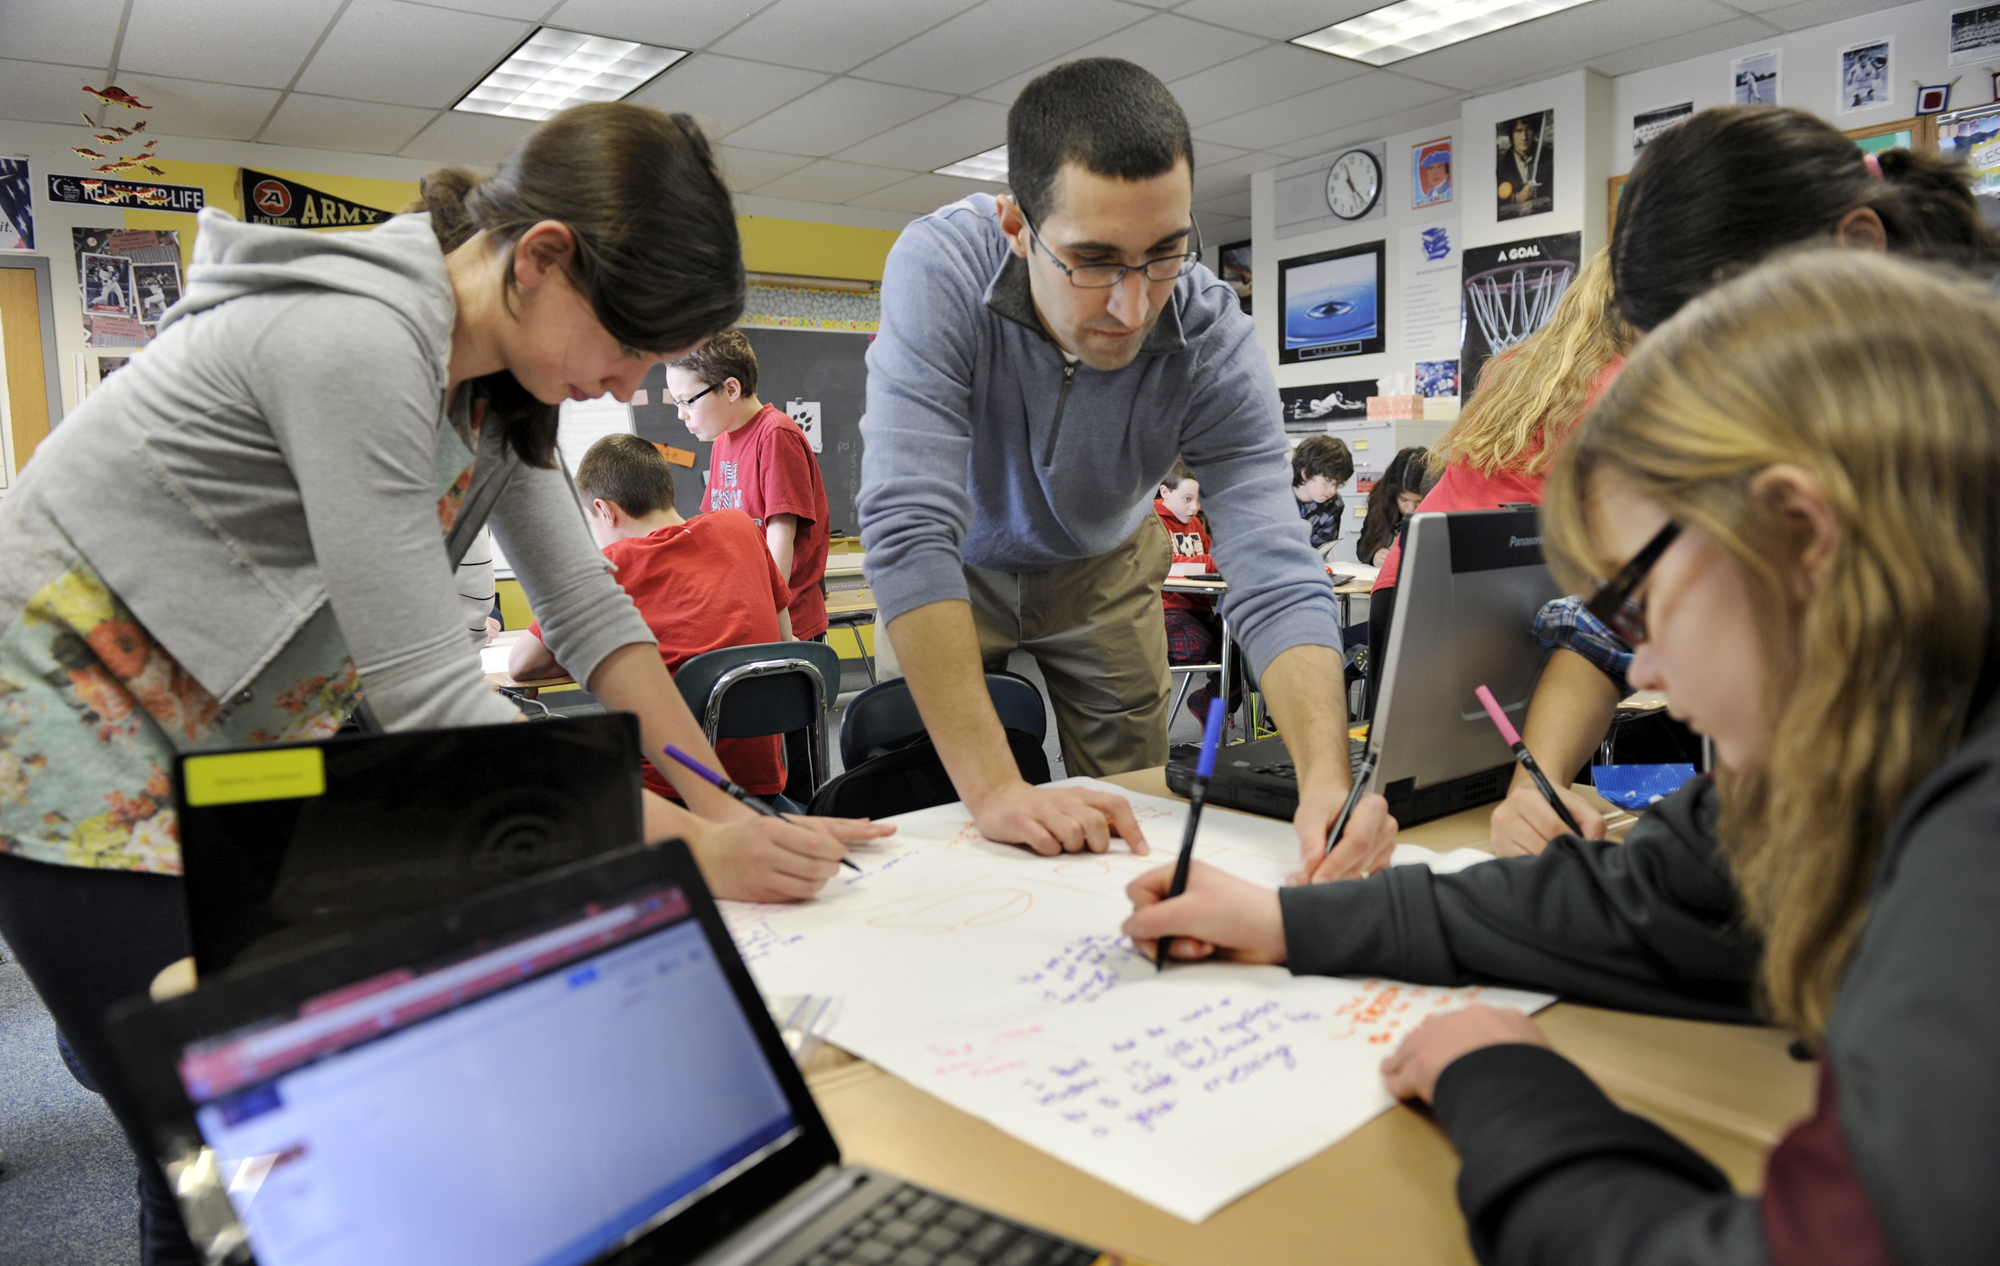 Teacher Joel Pardalis, center, works with students in his sixth-grade language arts class at New Fairfield Middle School in New Fairfield, Conn. Thursday, March 21, 2013.